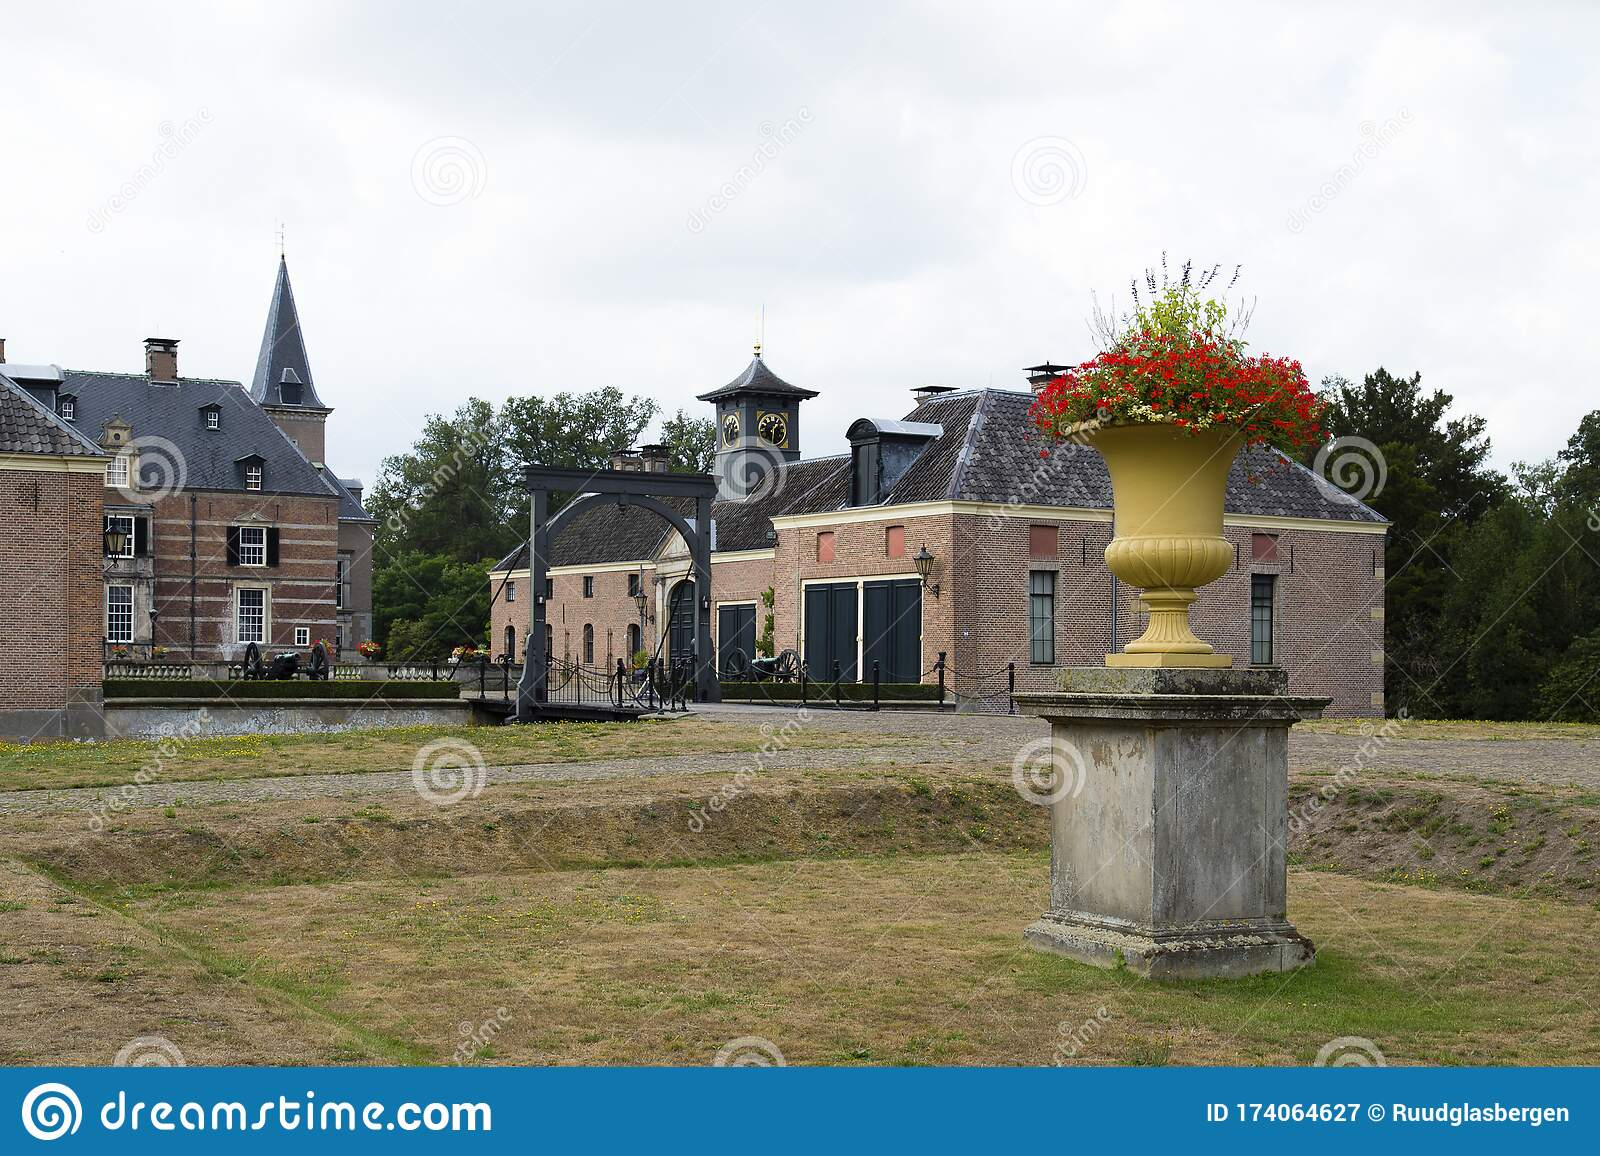 Historical Castle Twickel Hof Van Twente The Netherlands Stock Image Image Of Twente Cannon 174064627